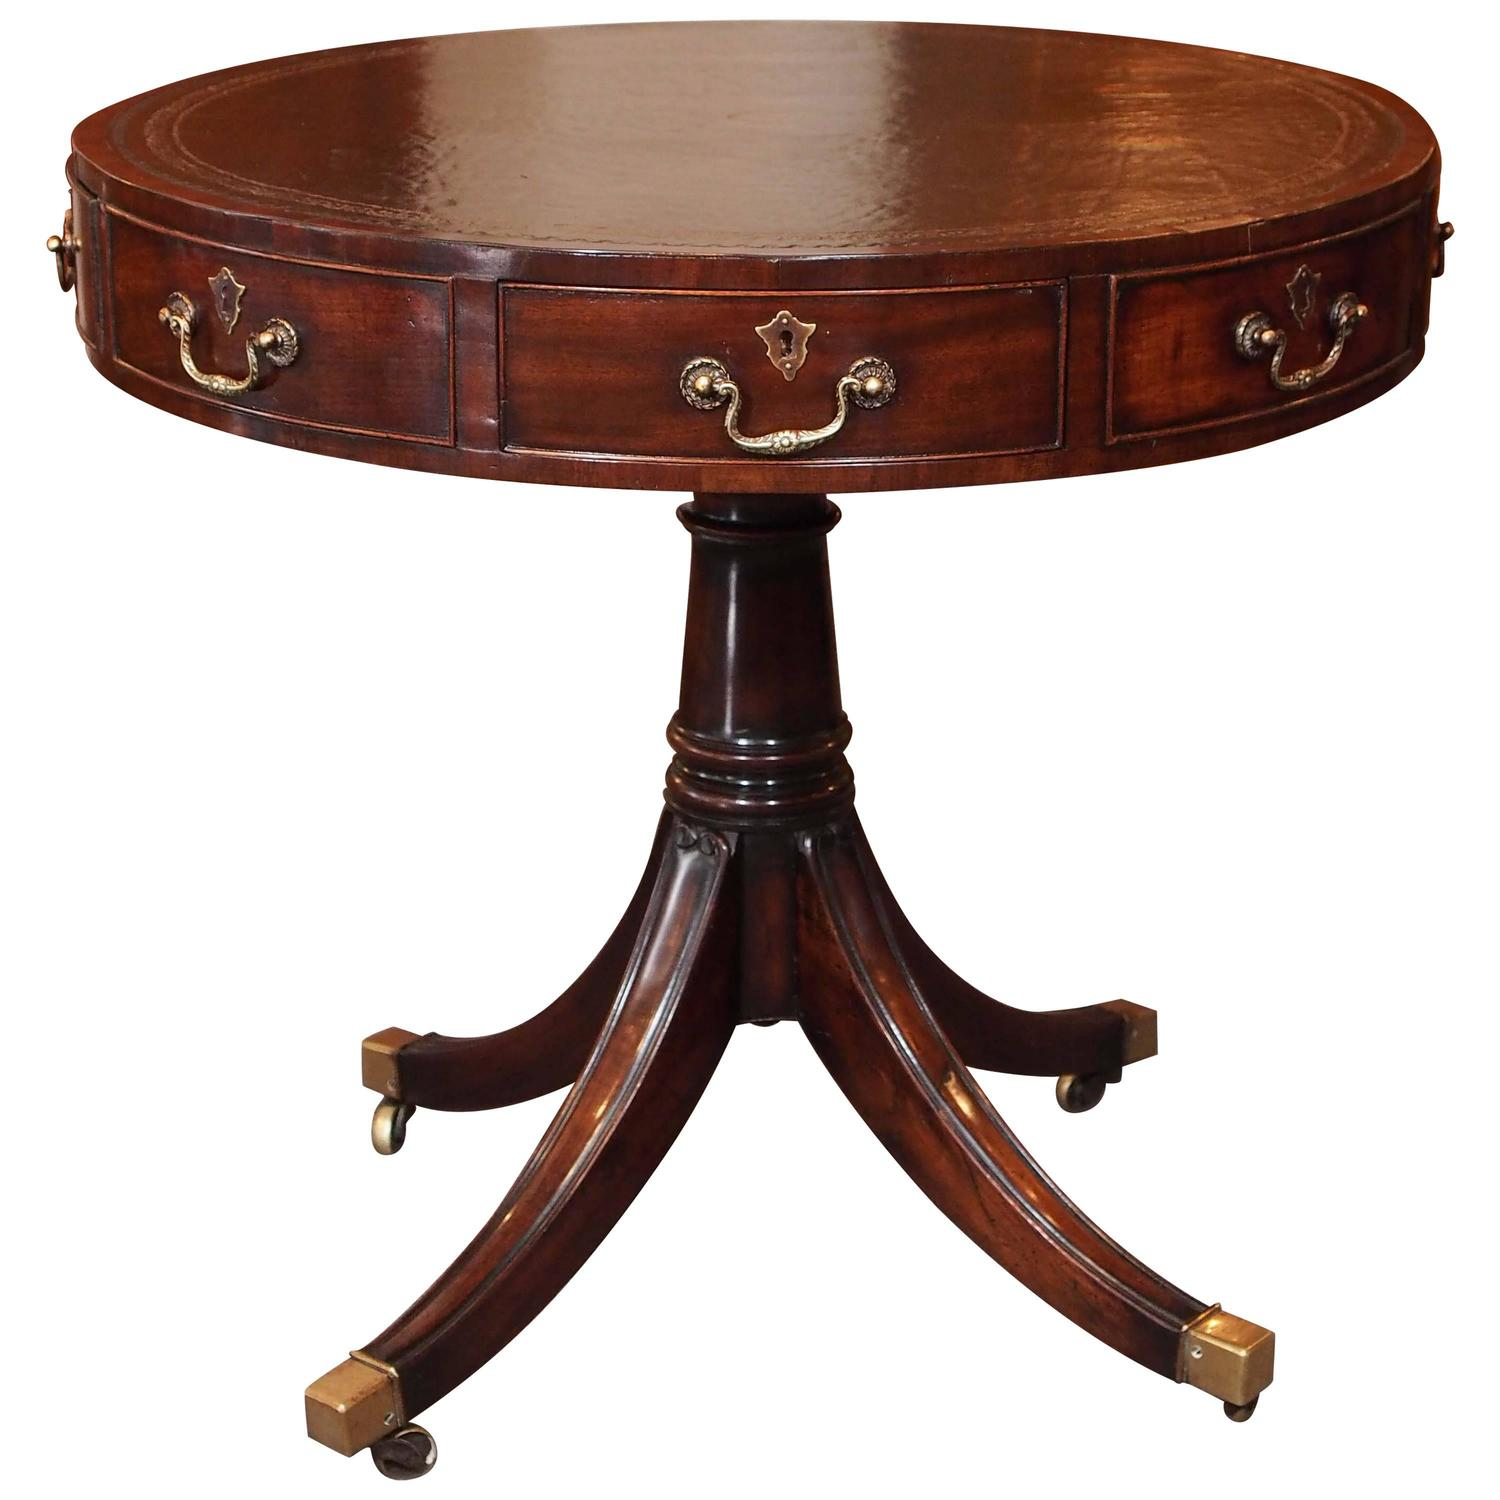 Antique Round Leather Top Coffee Table: Antique Scottish Mahogany Leather Top Rent Table At 1stdibs